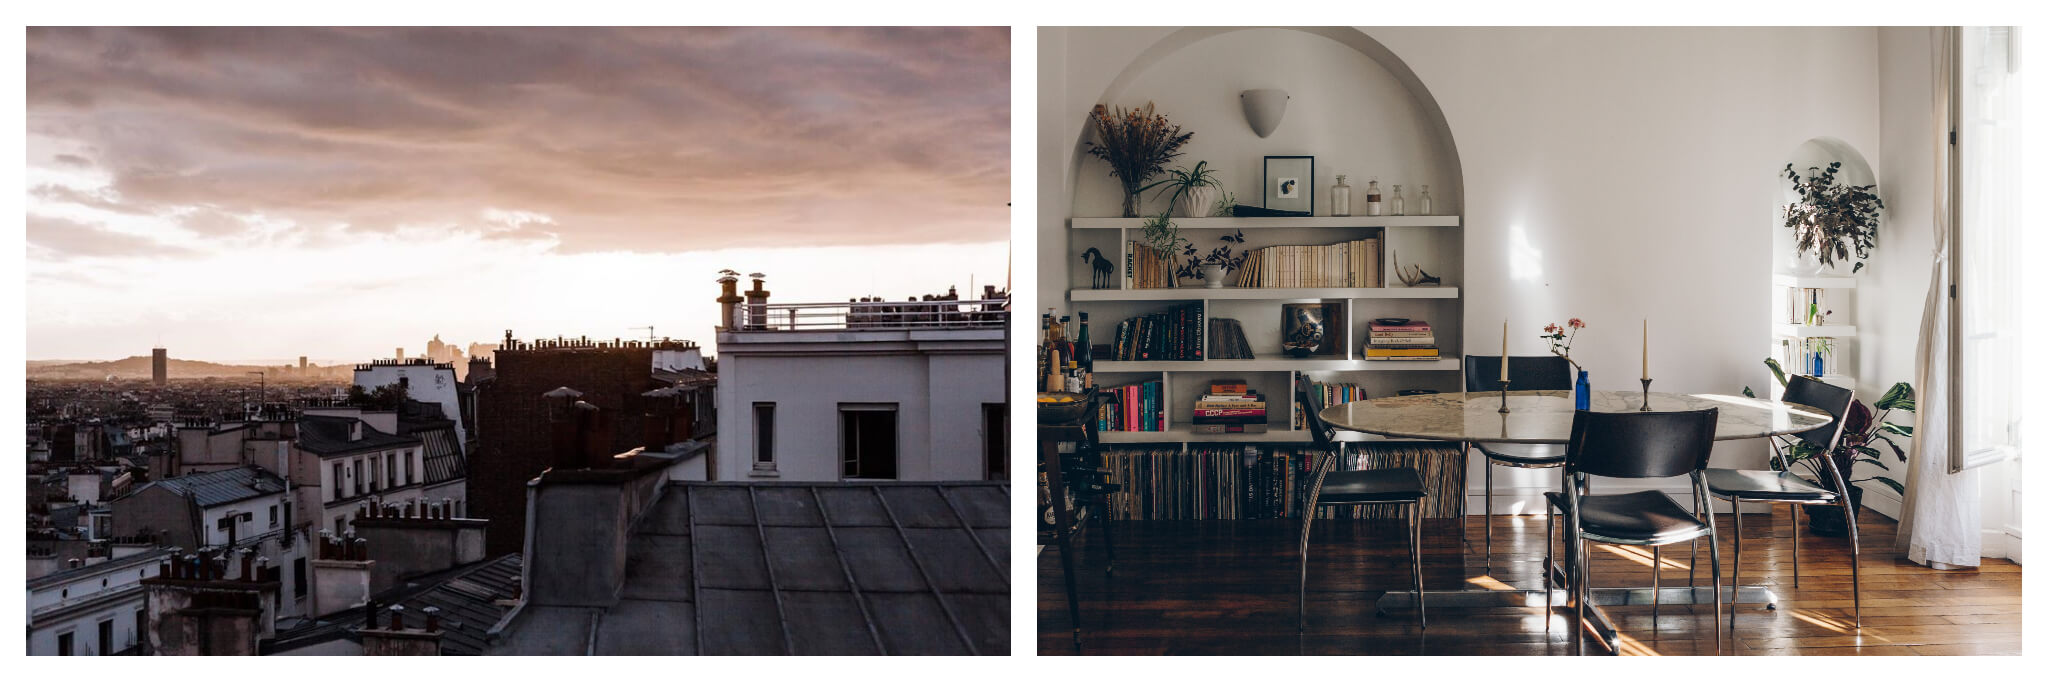 Left: A view of Parisian rooftops in the evening as the sun sets, Right: Light seeps into Kate Devine / Dear Everest's Parisian apartment, onto her table, chairs and bookshelf.